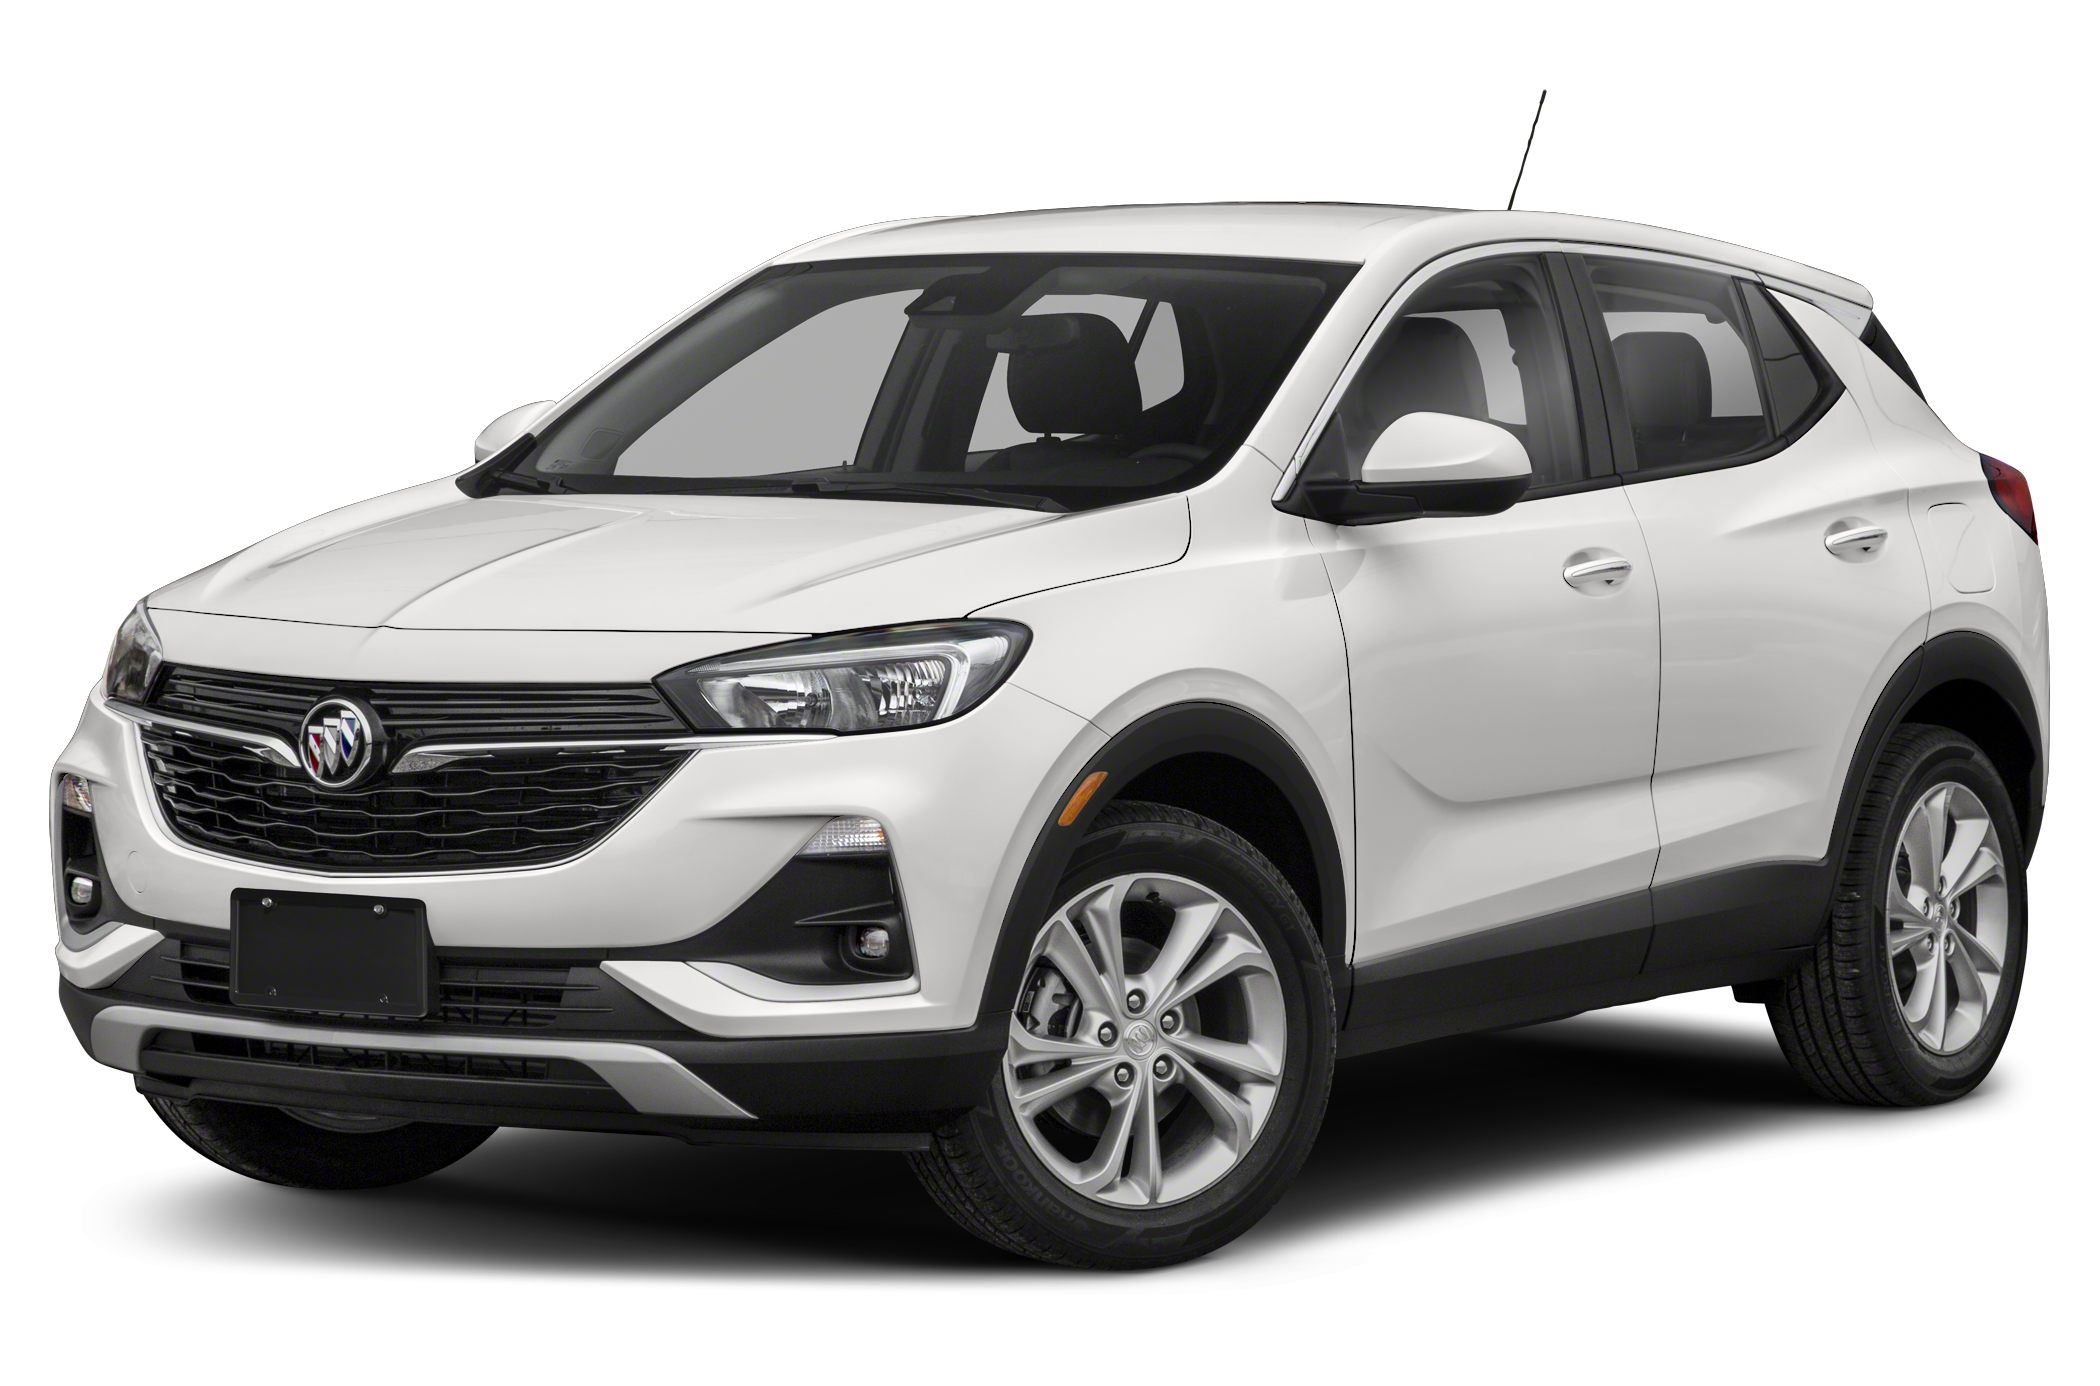 2020 Buick Encore Gx Rebates And Incentives 2021 Buick Encore Gx Lease Price, Mpg, Msrp